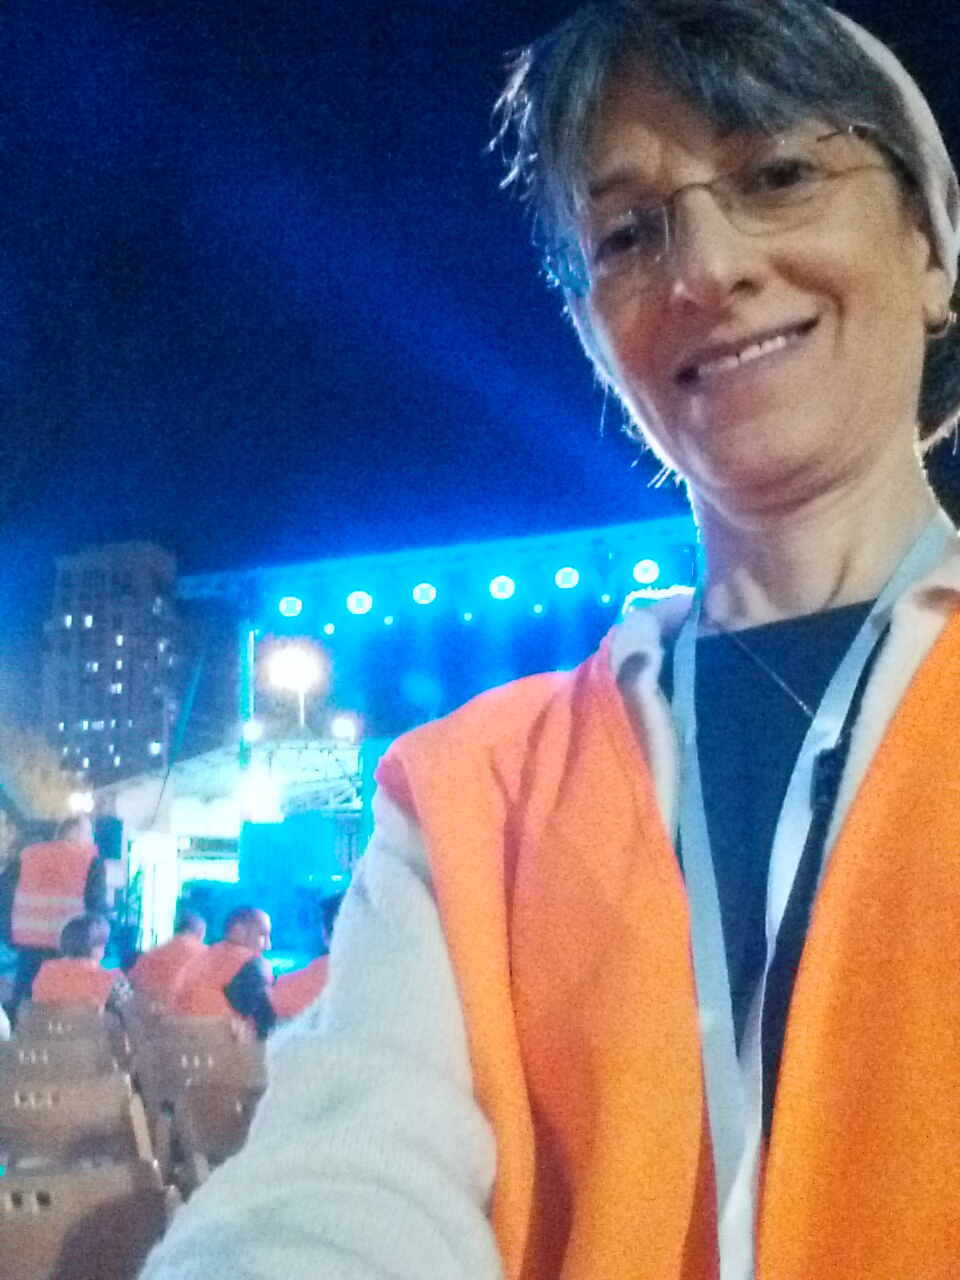 ISRAEL21c Associate Editor Abigail Klein Leichman in her orange vest at the cornerstone-laying event, October 26, 2016. Photo: selfie